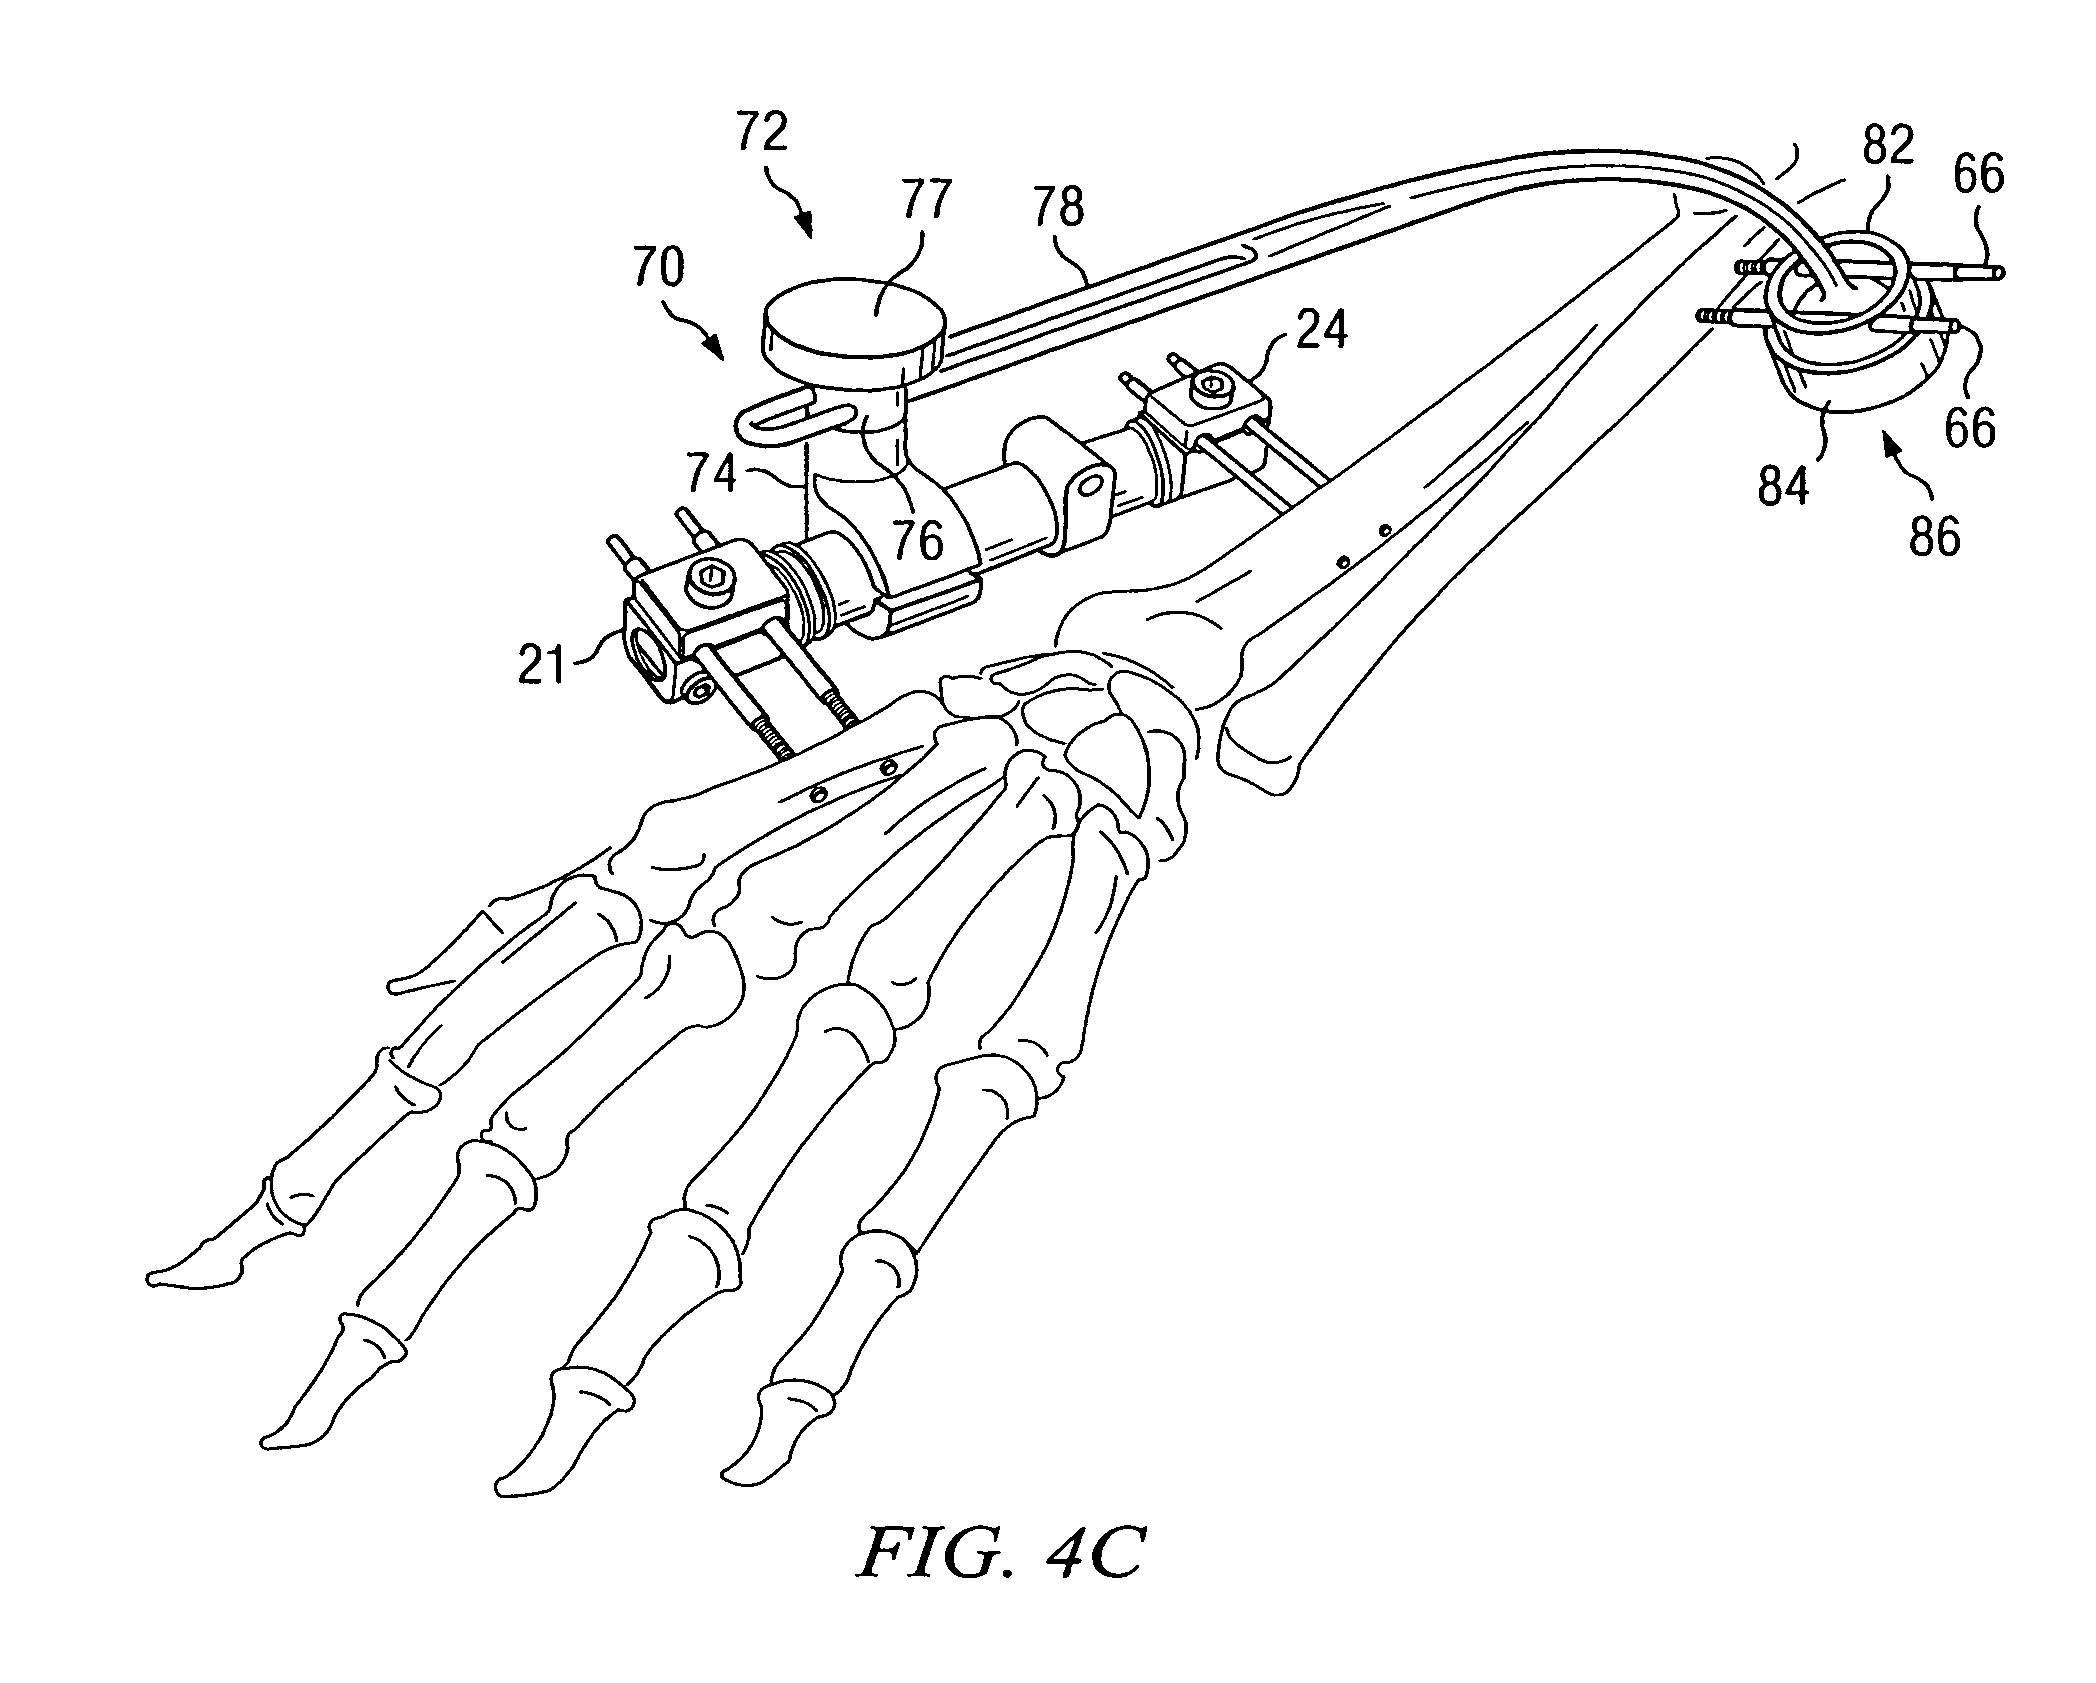 patent us20040133200 apparatus and method for maintaining bones in External Fixator Mouth patent drawing